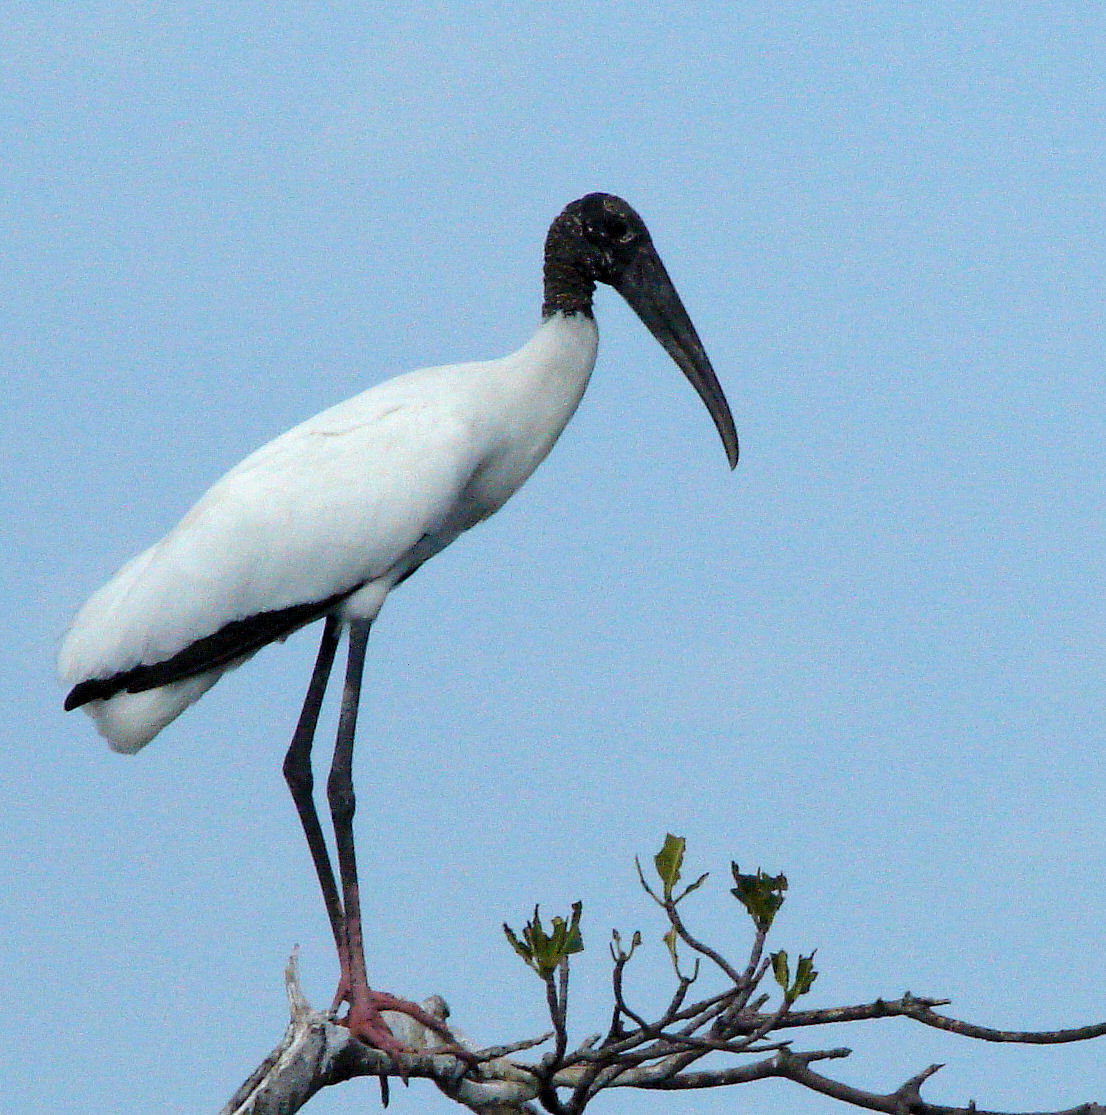 Wood Stork: Facts, Characteristics, Habitat and More